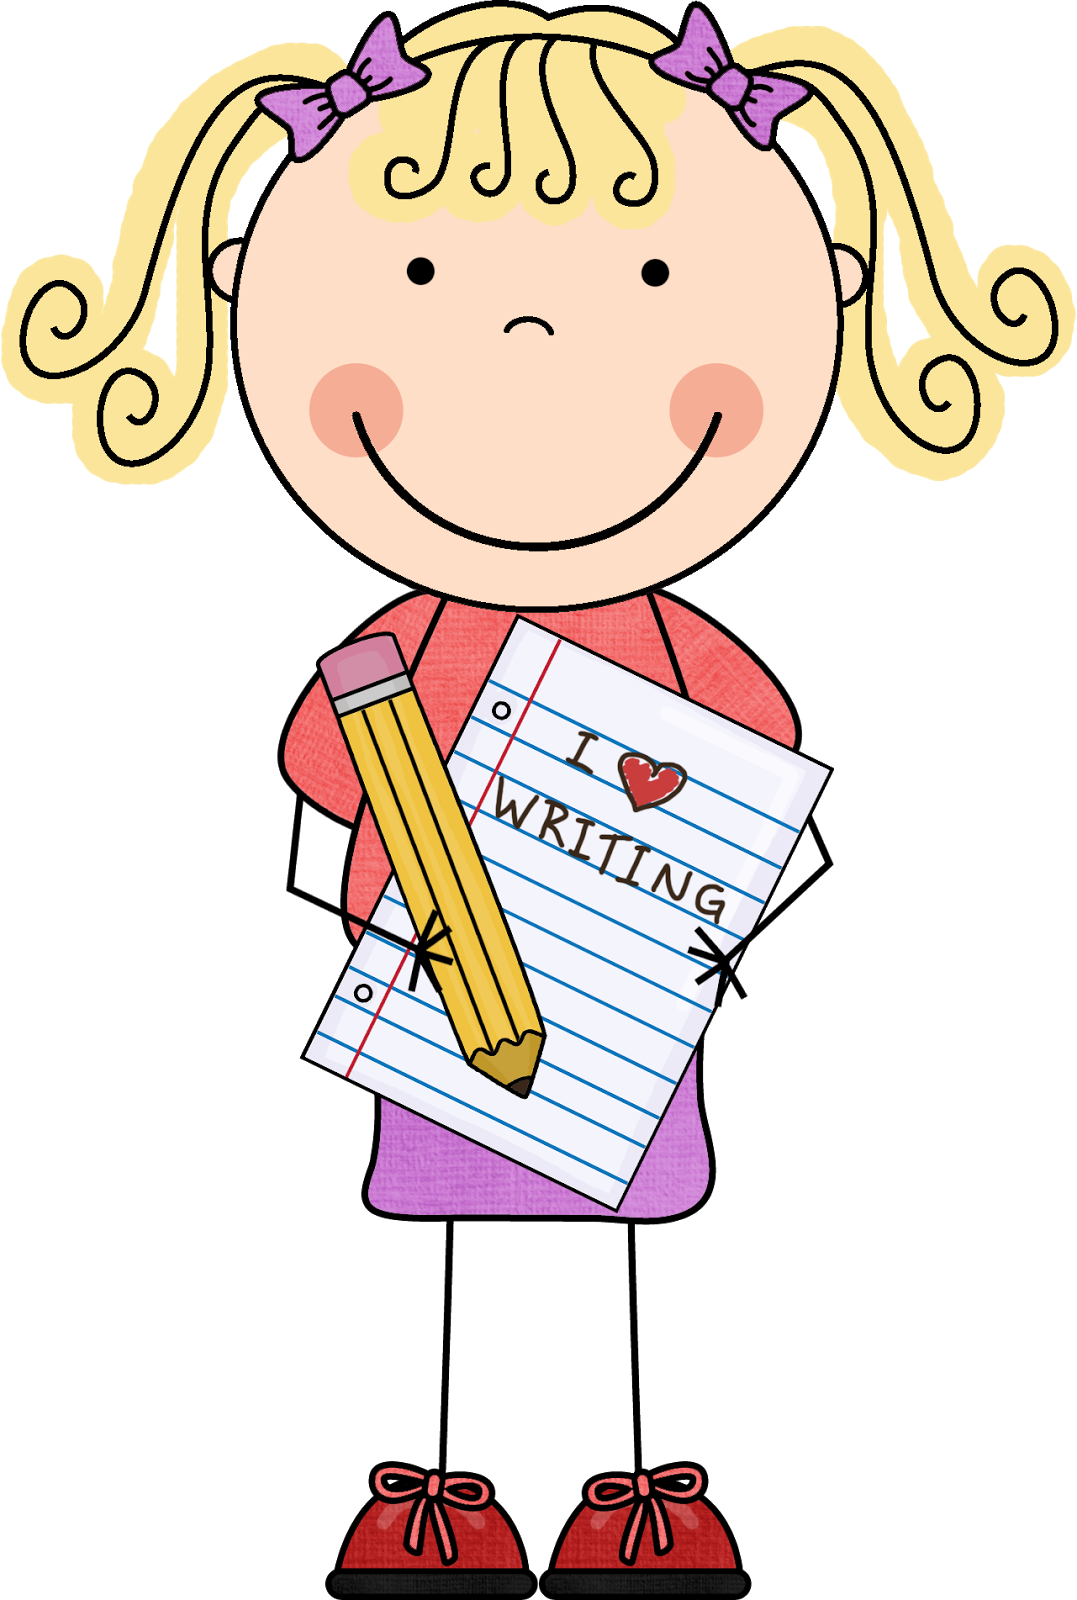 Nonfiction writing clipart clip art royalty free stock Students reading and writing clipart - Clip Art Library clip art royalty free stock